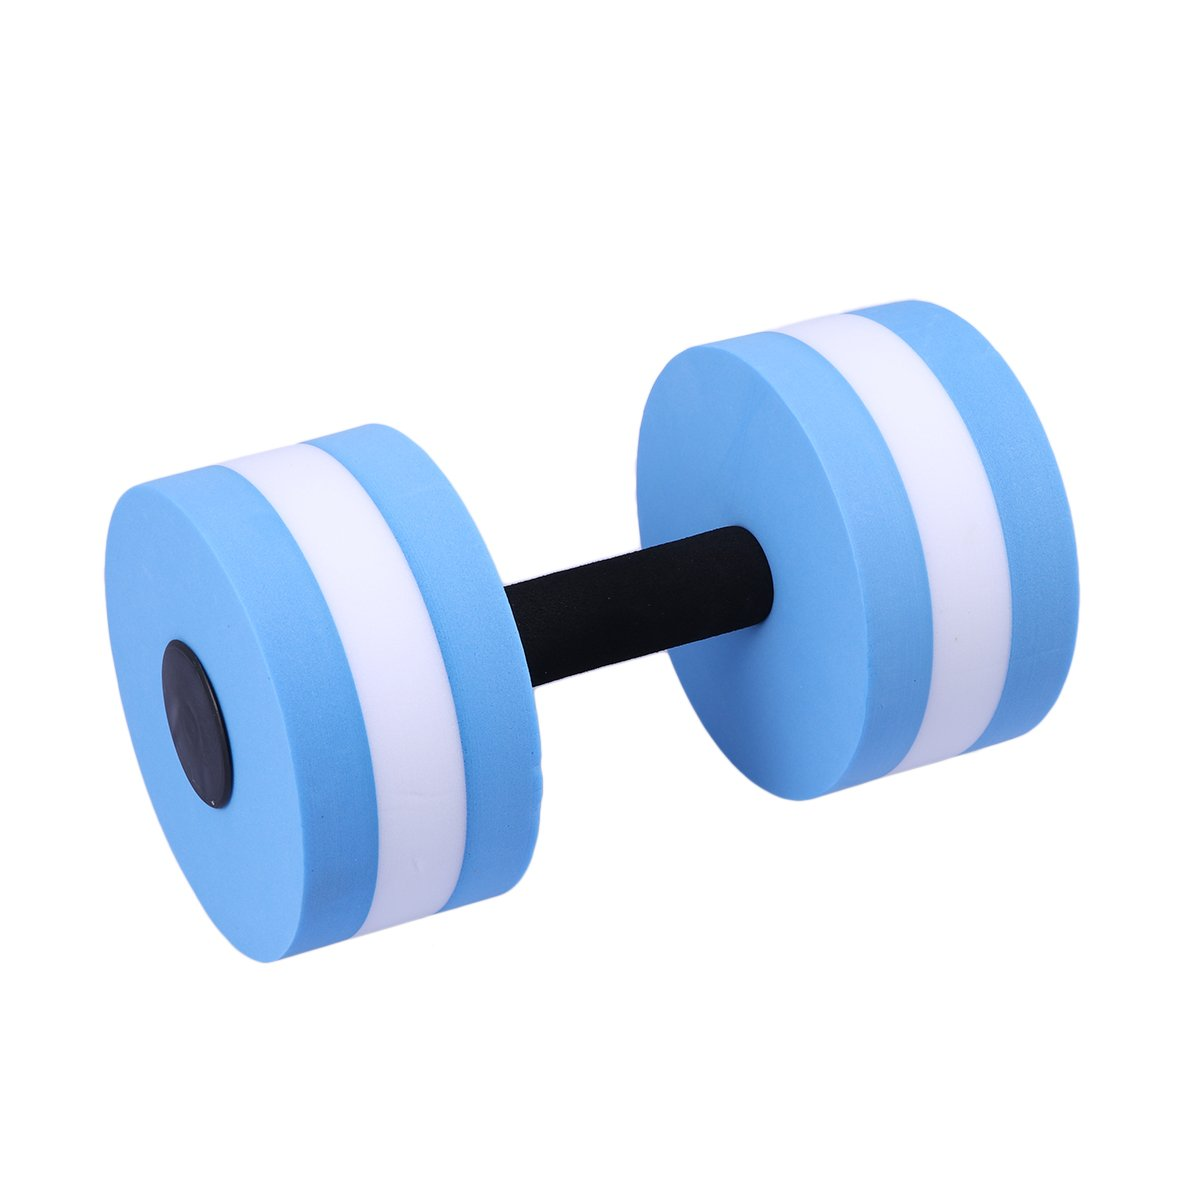 WINOMO 1 Pcs Aquatic Exercise Dumbells Water Barbells Hand Bar ...